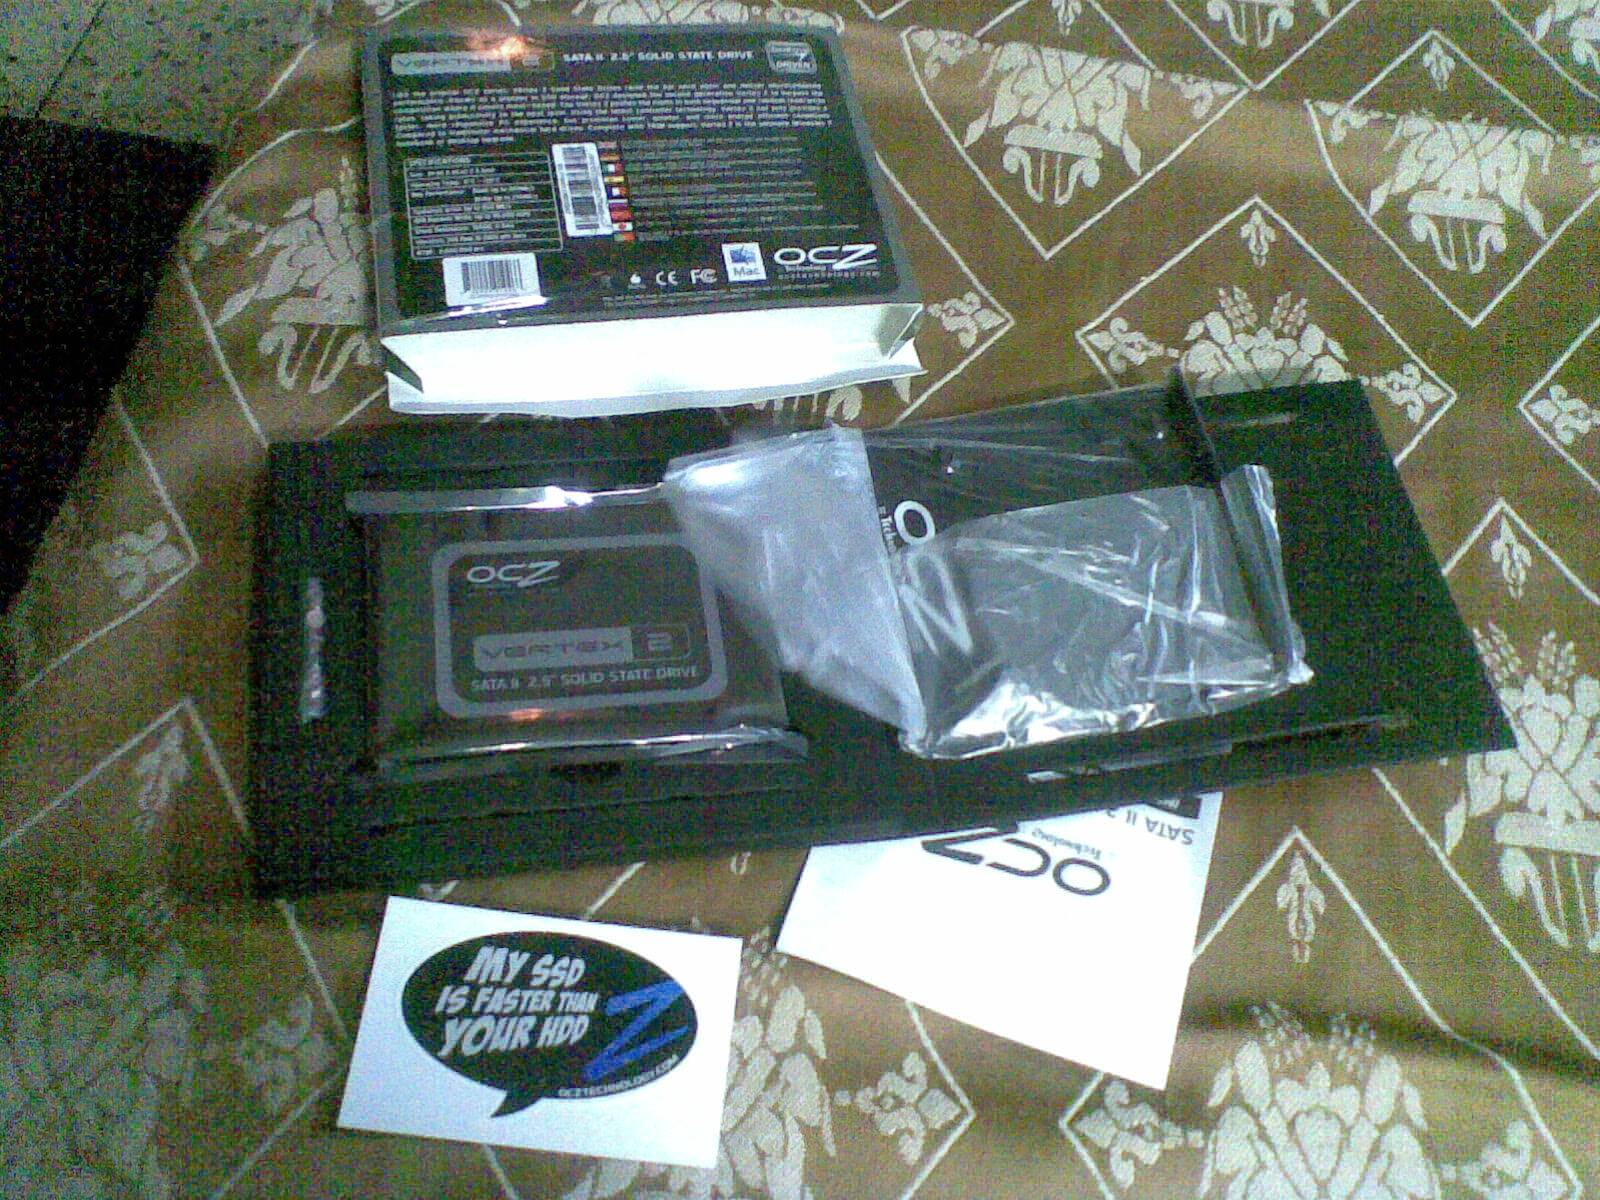 SSD Unboxed/Content